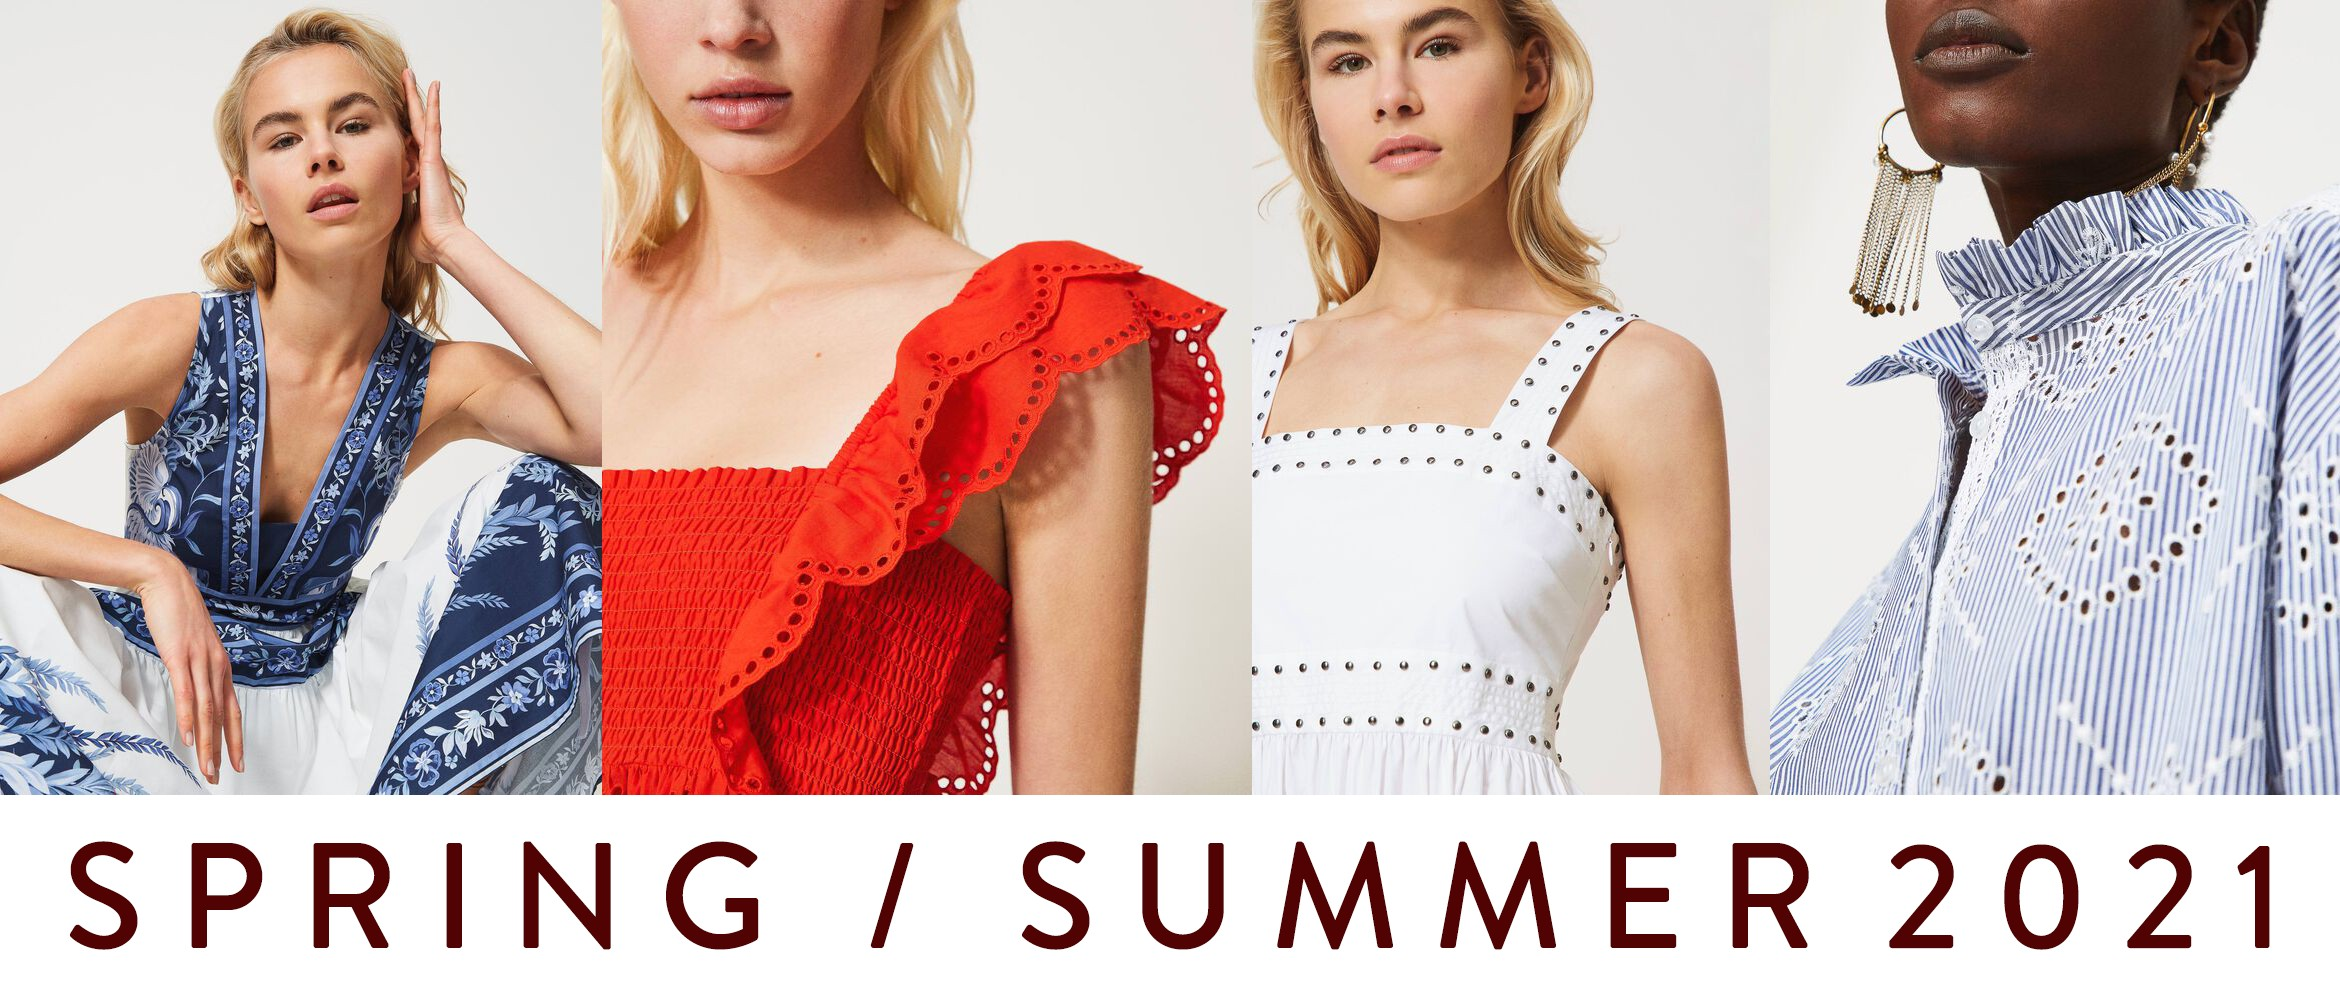 SPRING / SUMMER COLLECTION